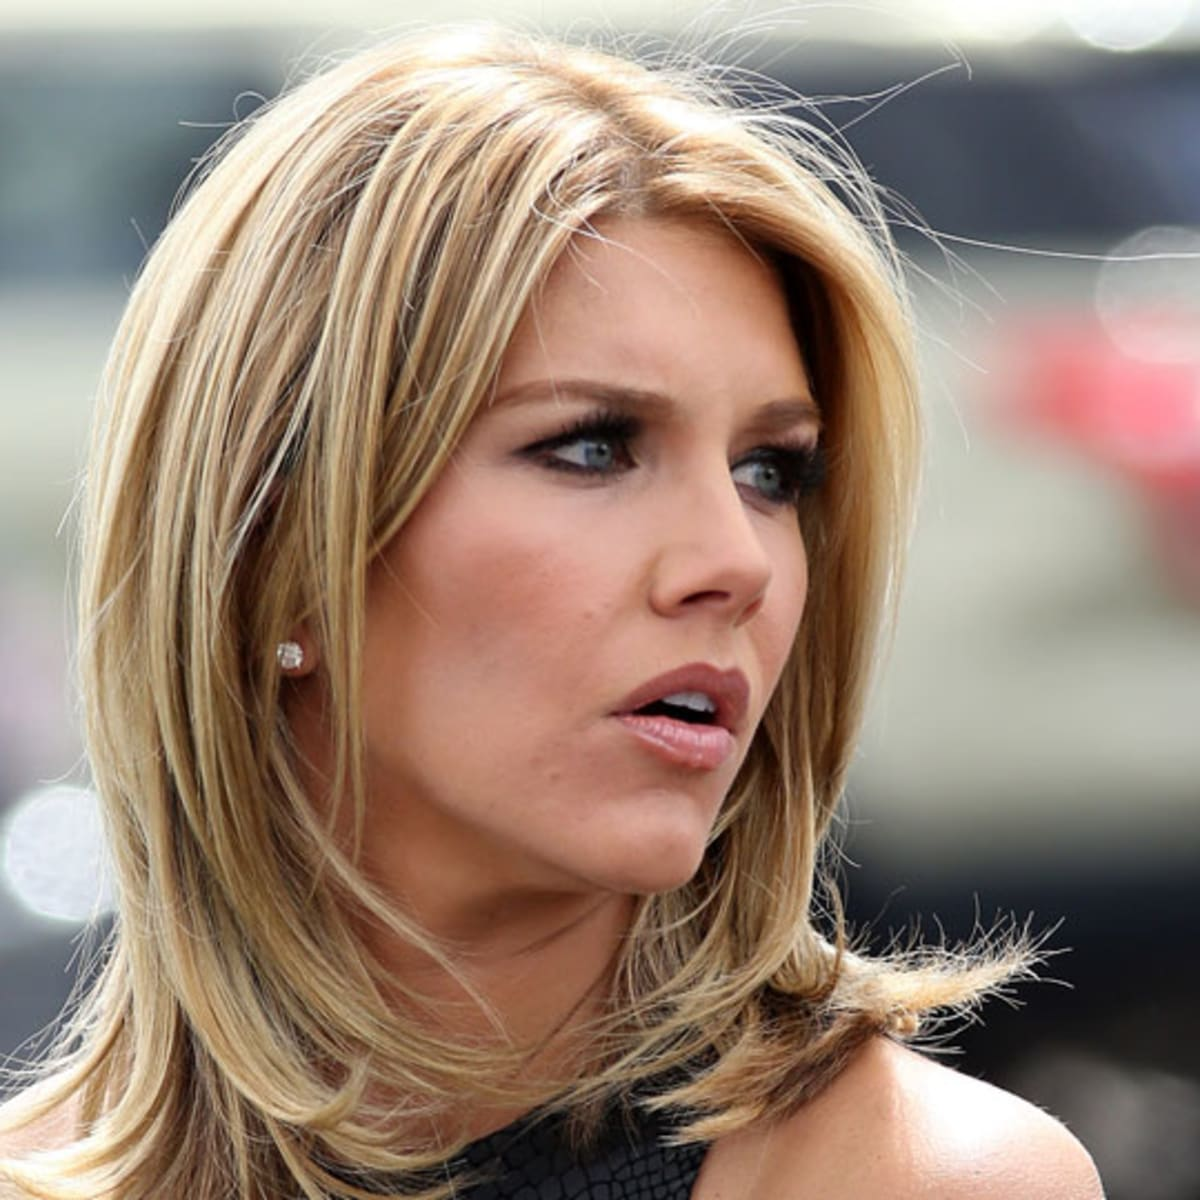 Charissa Thompson On Her Career Path Women Working In Sports Media Sports Illustrated